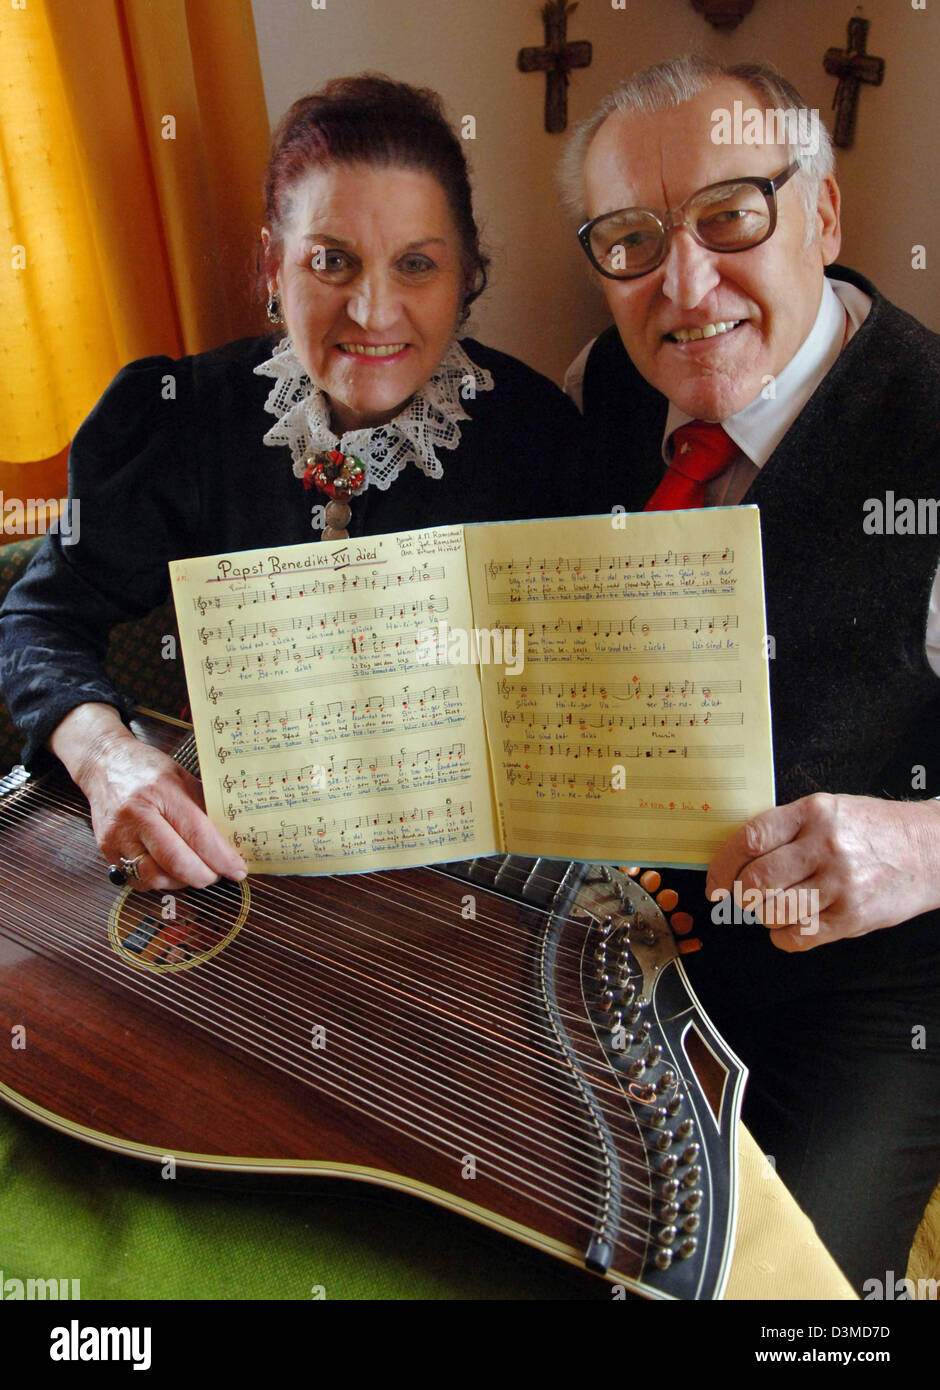 Annemarie and Hans Ramsauer, musicians, show the lyrics of